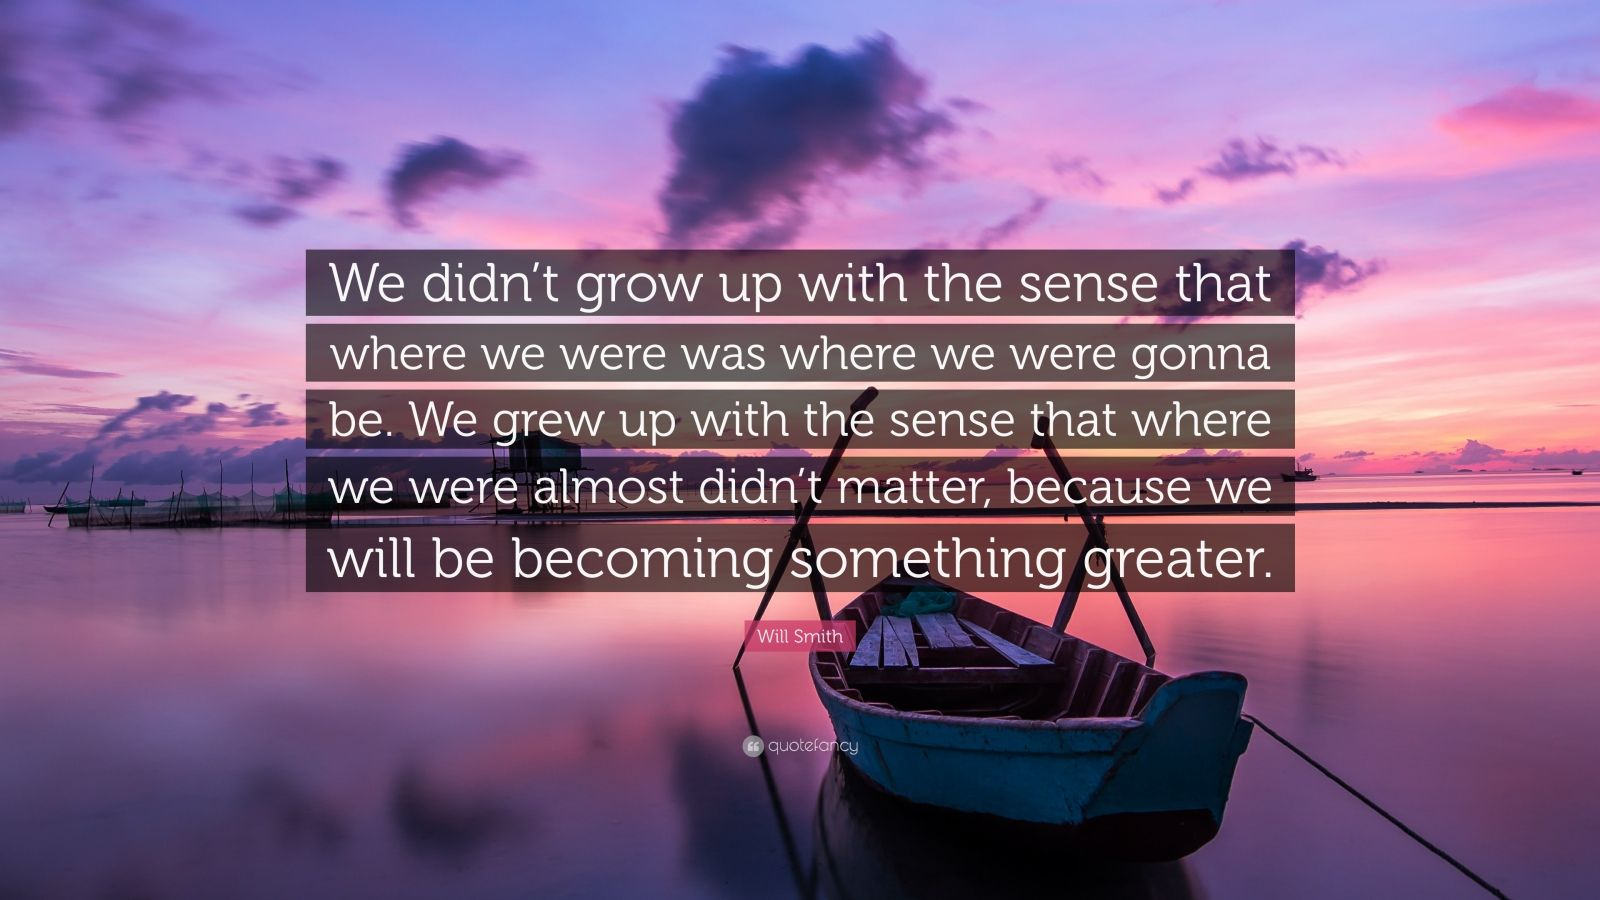 "Will Smith Quote: ""We didn't grow up with the sense that where we were was where we were gonna be. We grew up with the sense that where we were almost didn't matter, because we will be becoming something greater."""